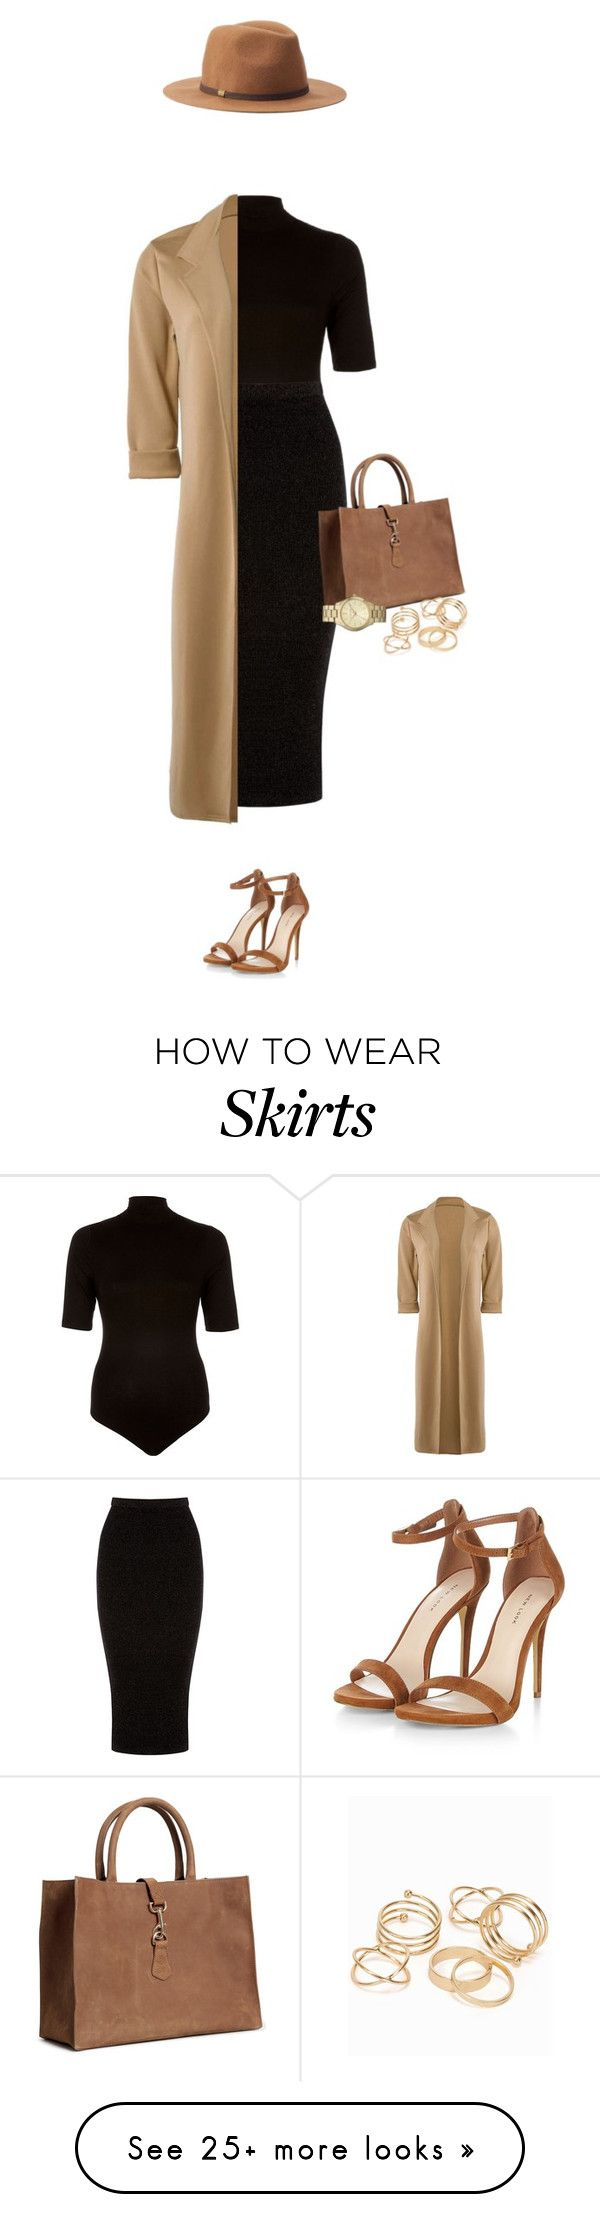 """You re looking good girl !"" by azzra on Polyvore featuring River Island, Warehouse, H&M, Michael Kors, JFR and Apt. 9"